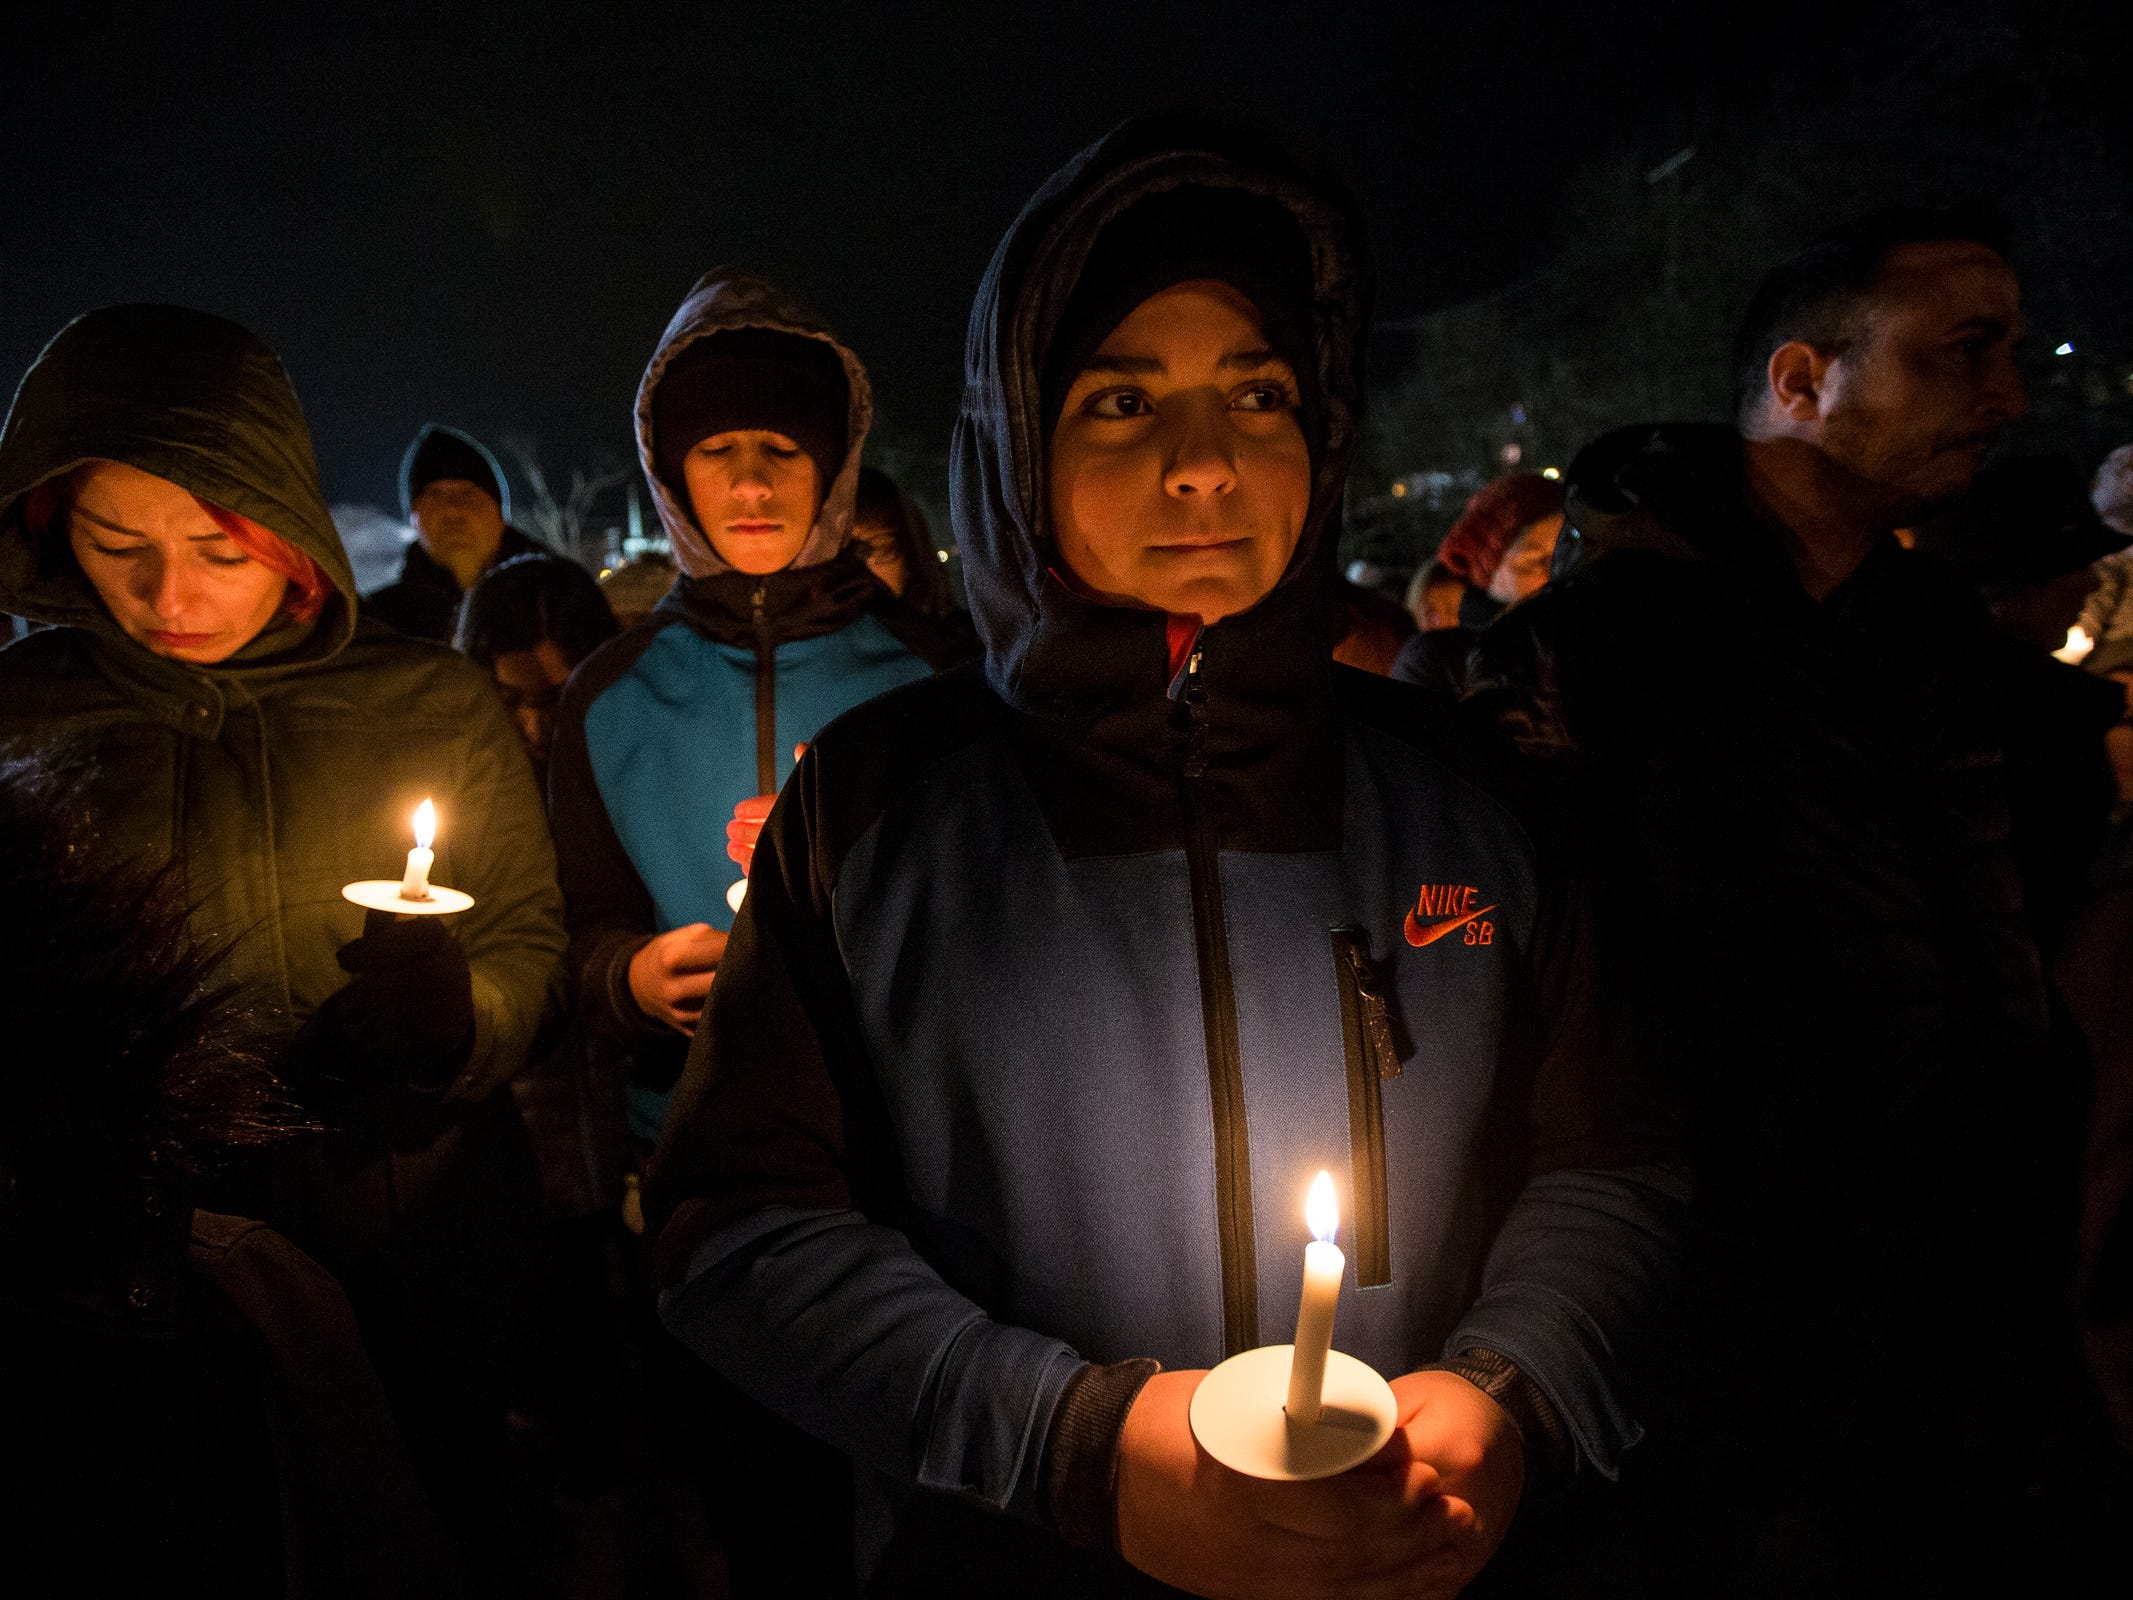 Adham Elmallah, 13, center, with his brother Nabil 15, and mother Navila, left, all of Dearborn remember their friends in the Abbas family during a candlelight vigil at the Ford Field Park in Northville Friday, Jan. 11, 2019.